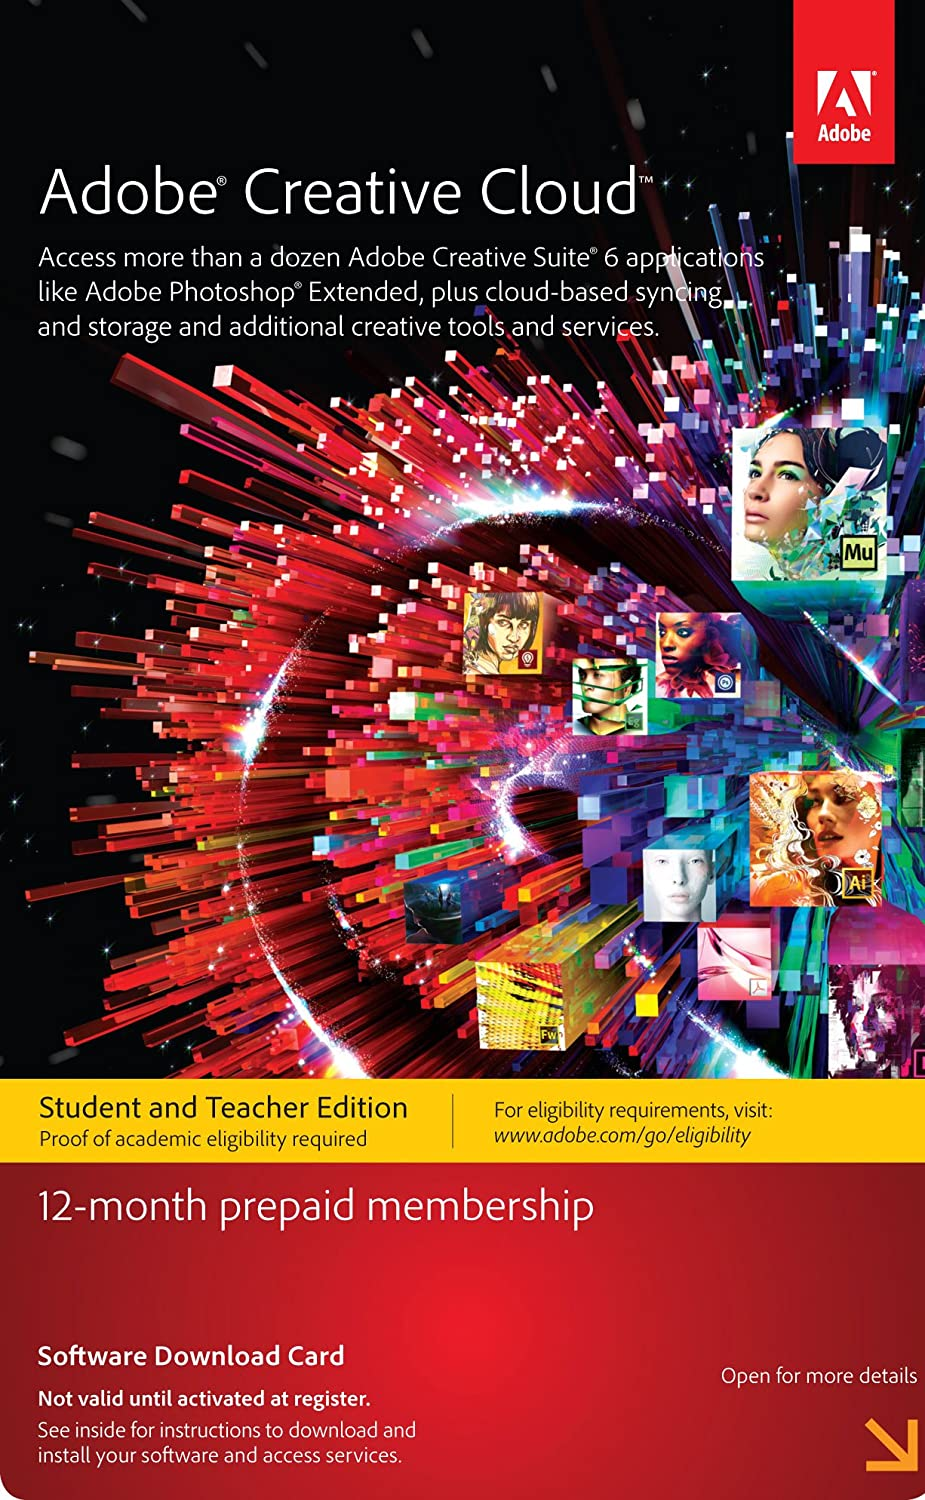 Amazon.com: Adobe Creative Cloud Student And Teacher Edition Prepaid  Membership 12 Month   Validation Required: Software